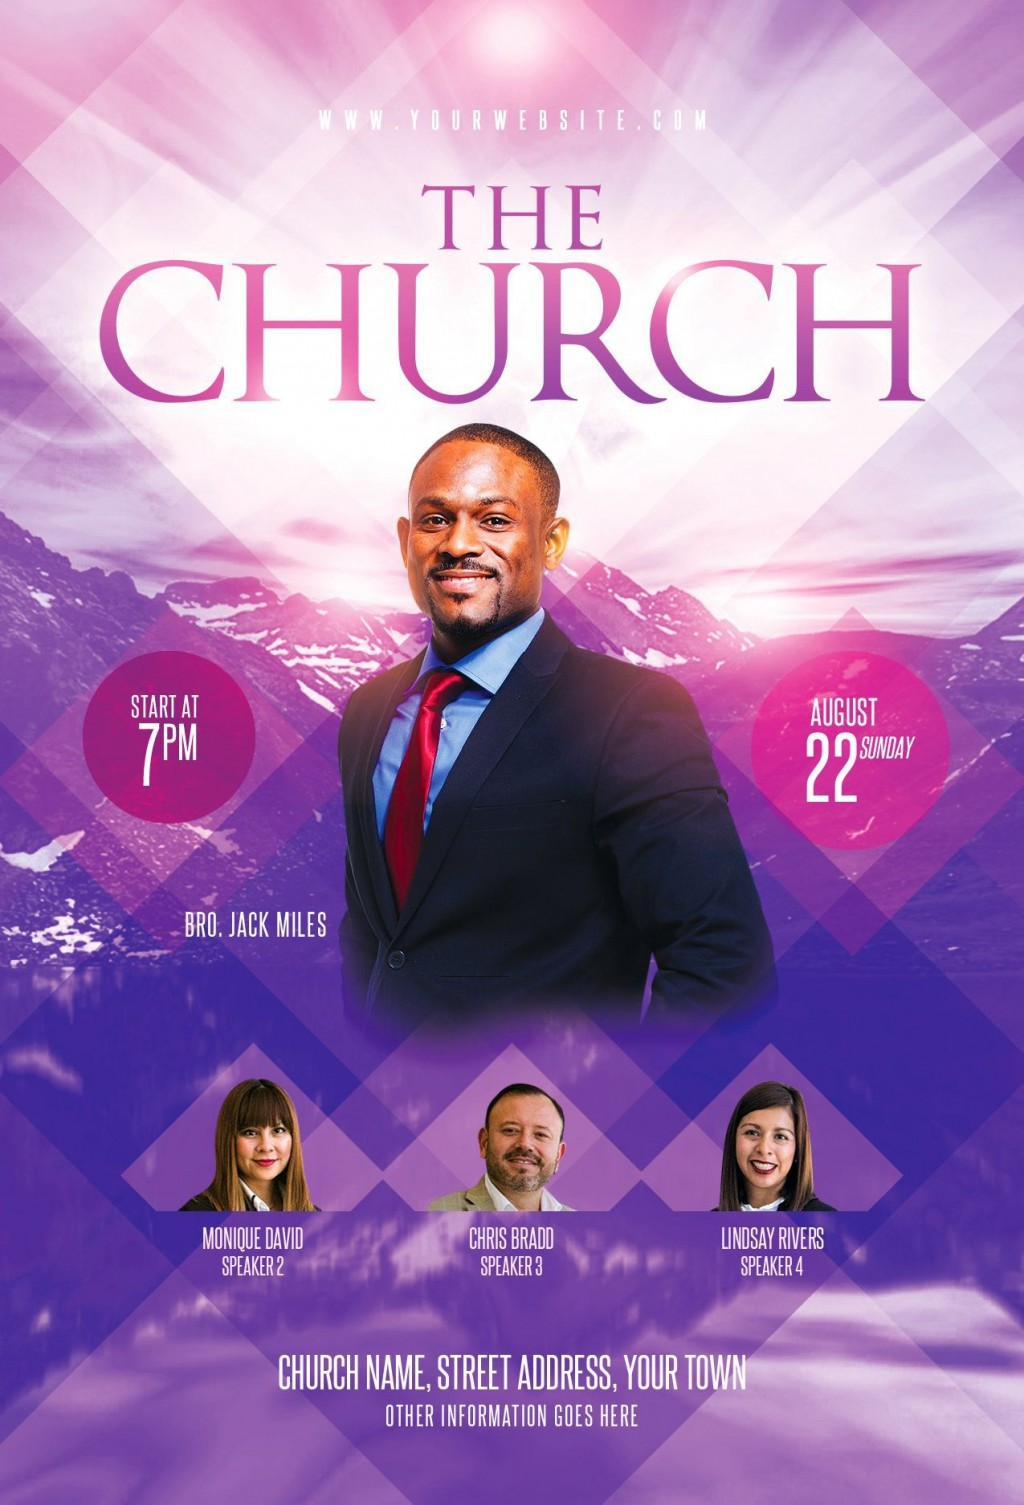 002 Magnificent Church Flyer Template Photoshop Free Image  PsdLarge